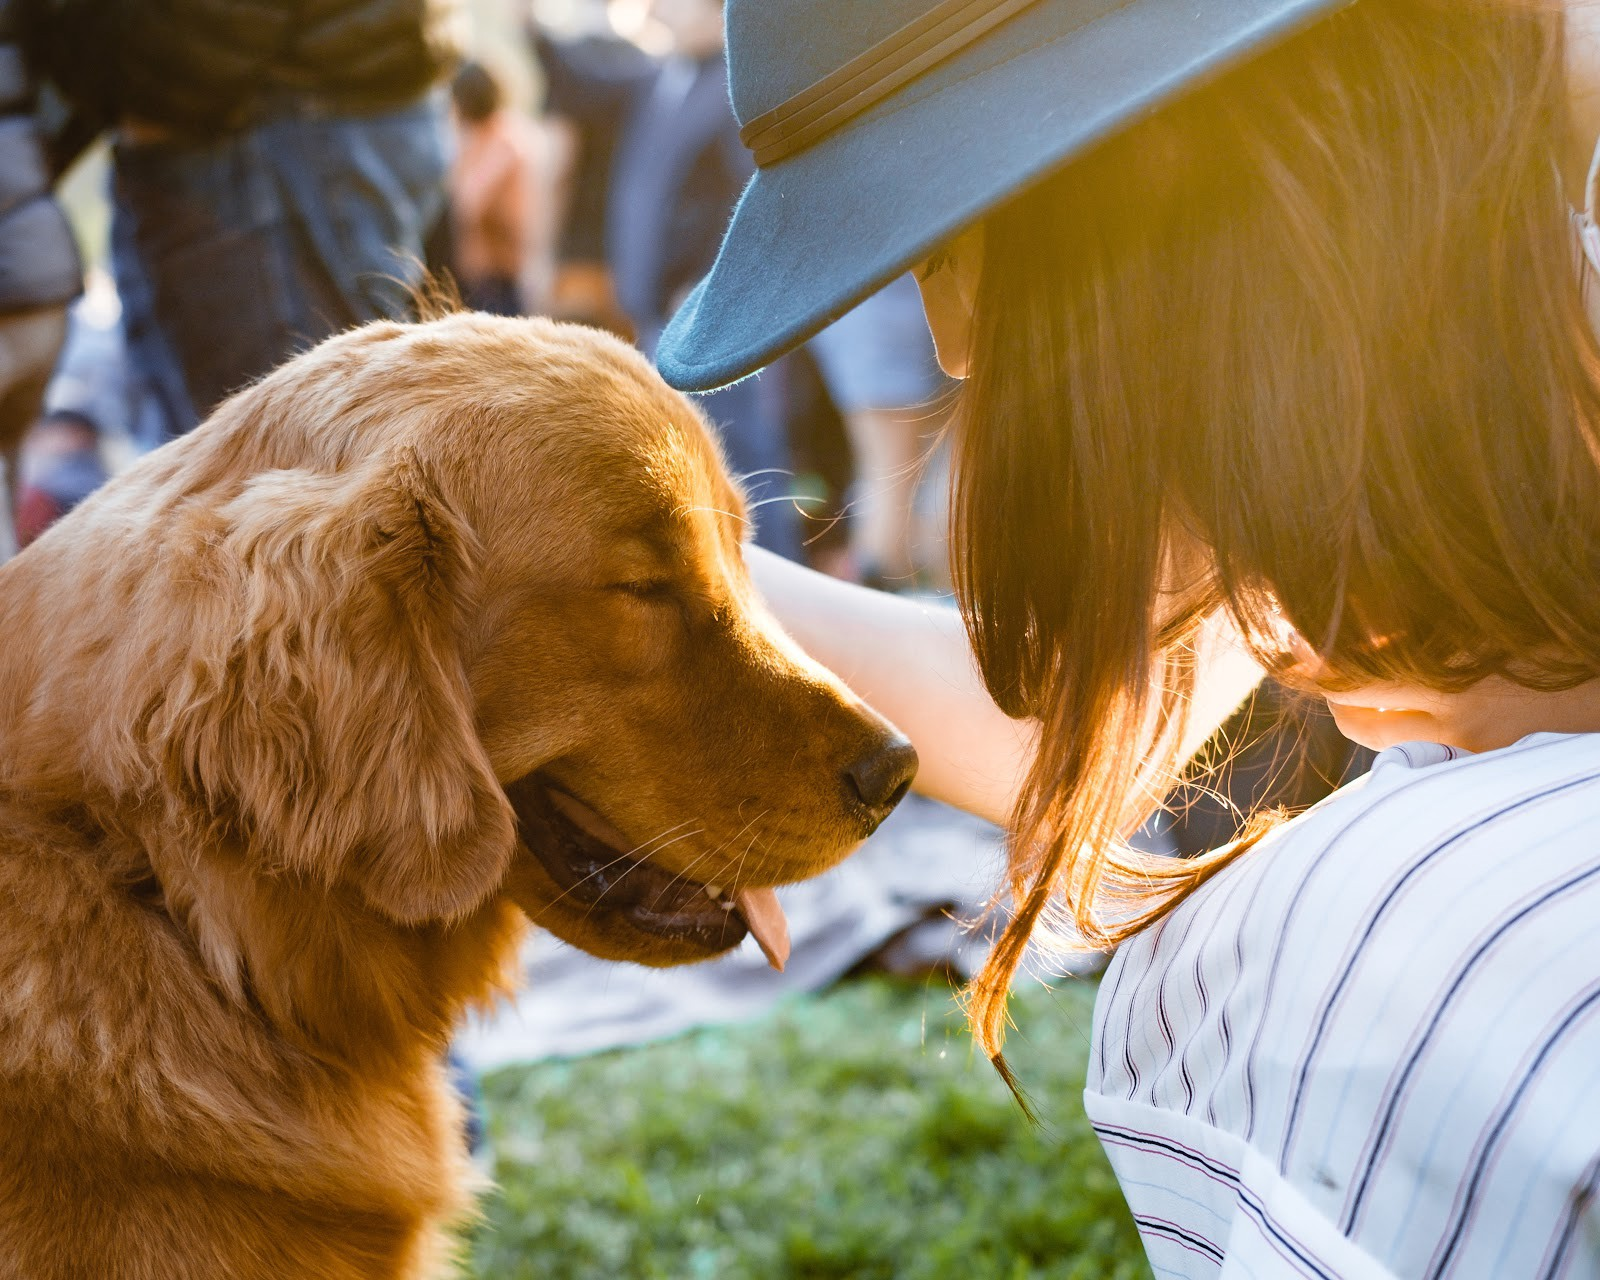 Cannabis products are moving into pet industries too! Your furry friend can now also reap the benefits of cannabis.